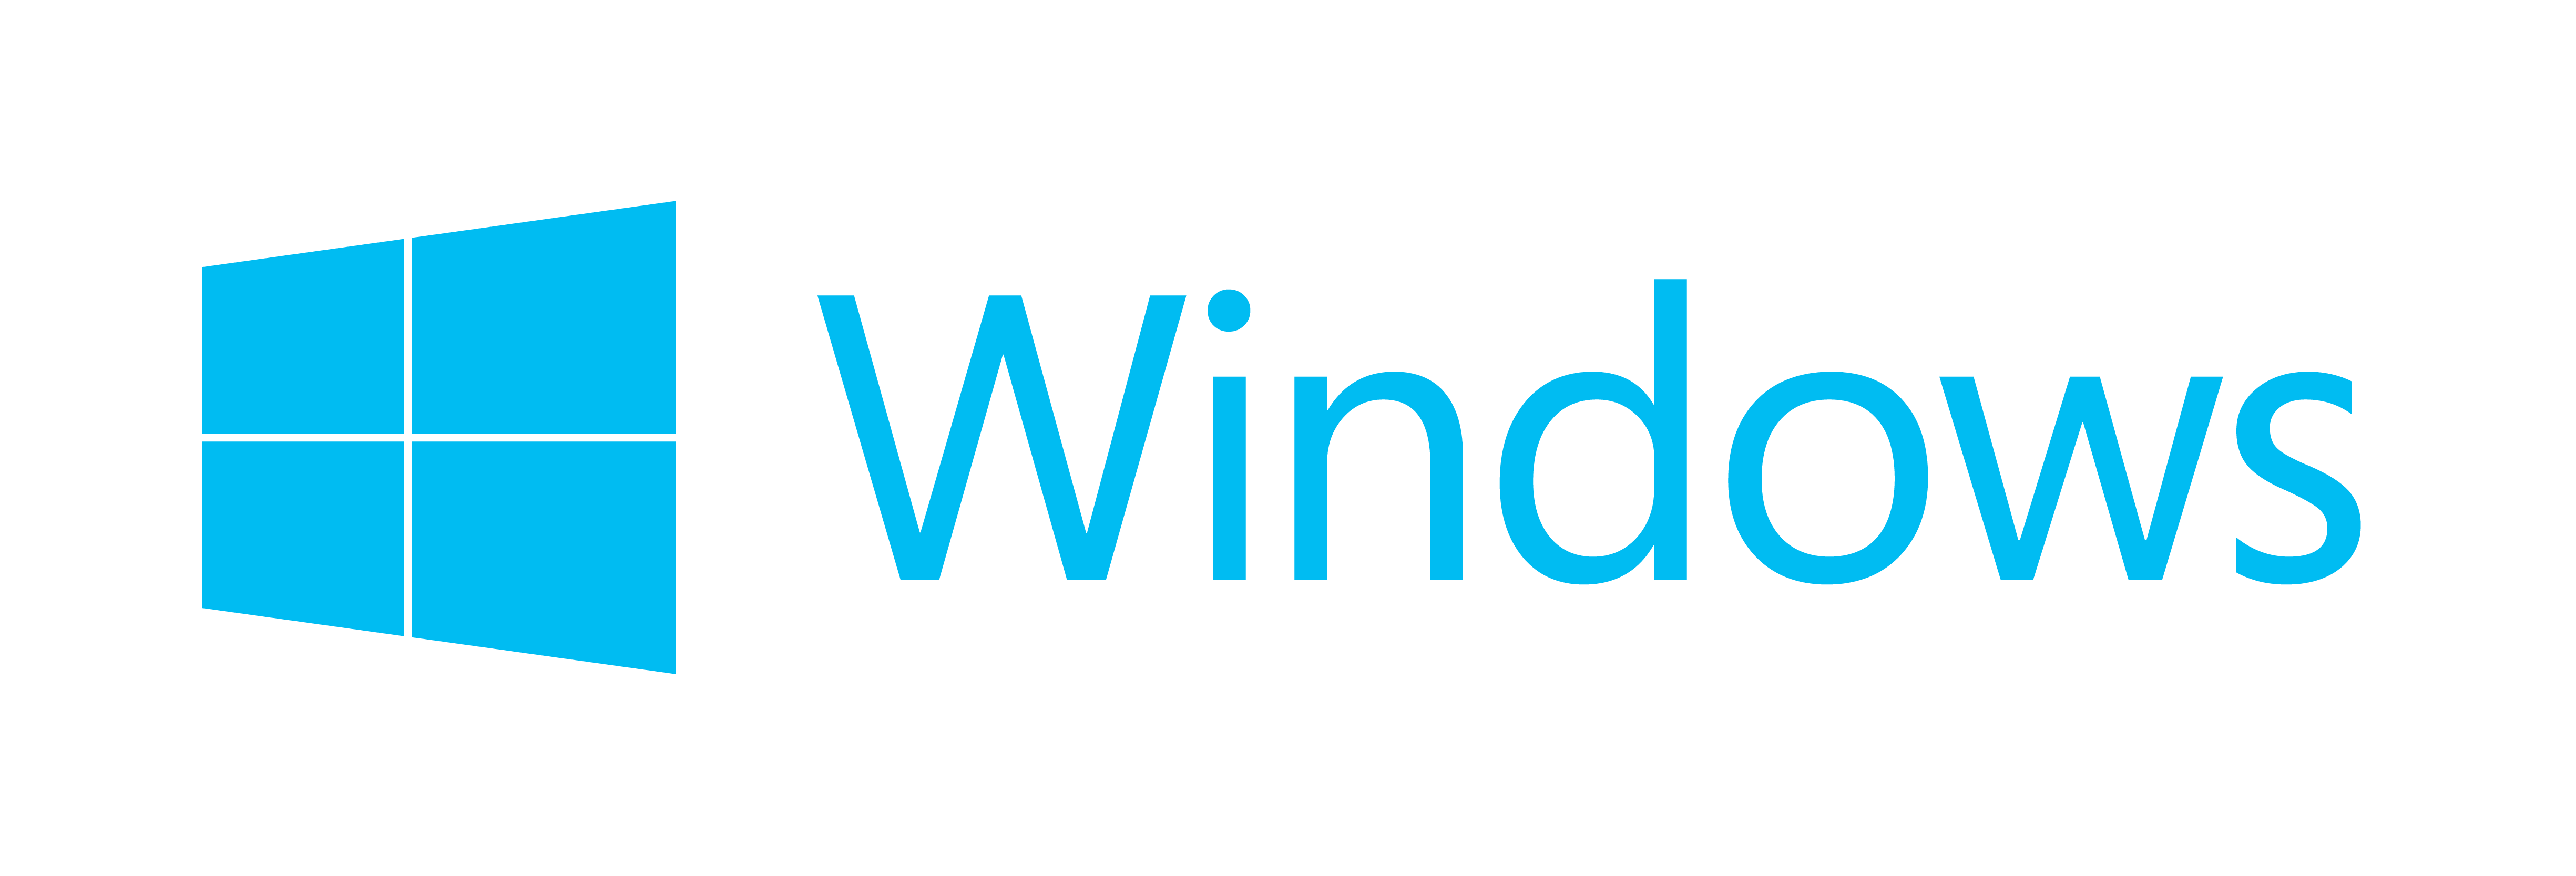 Microsoft Windows Blue Logo Clipart Photo